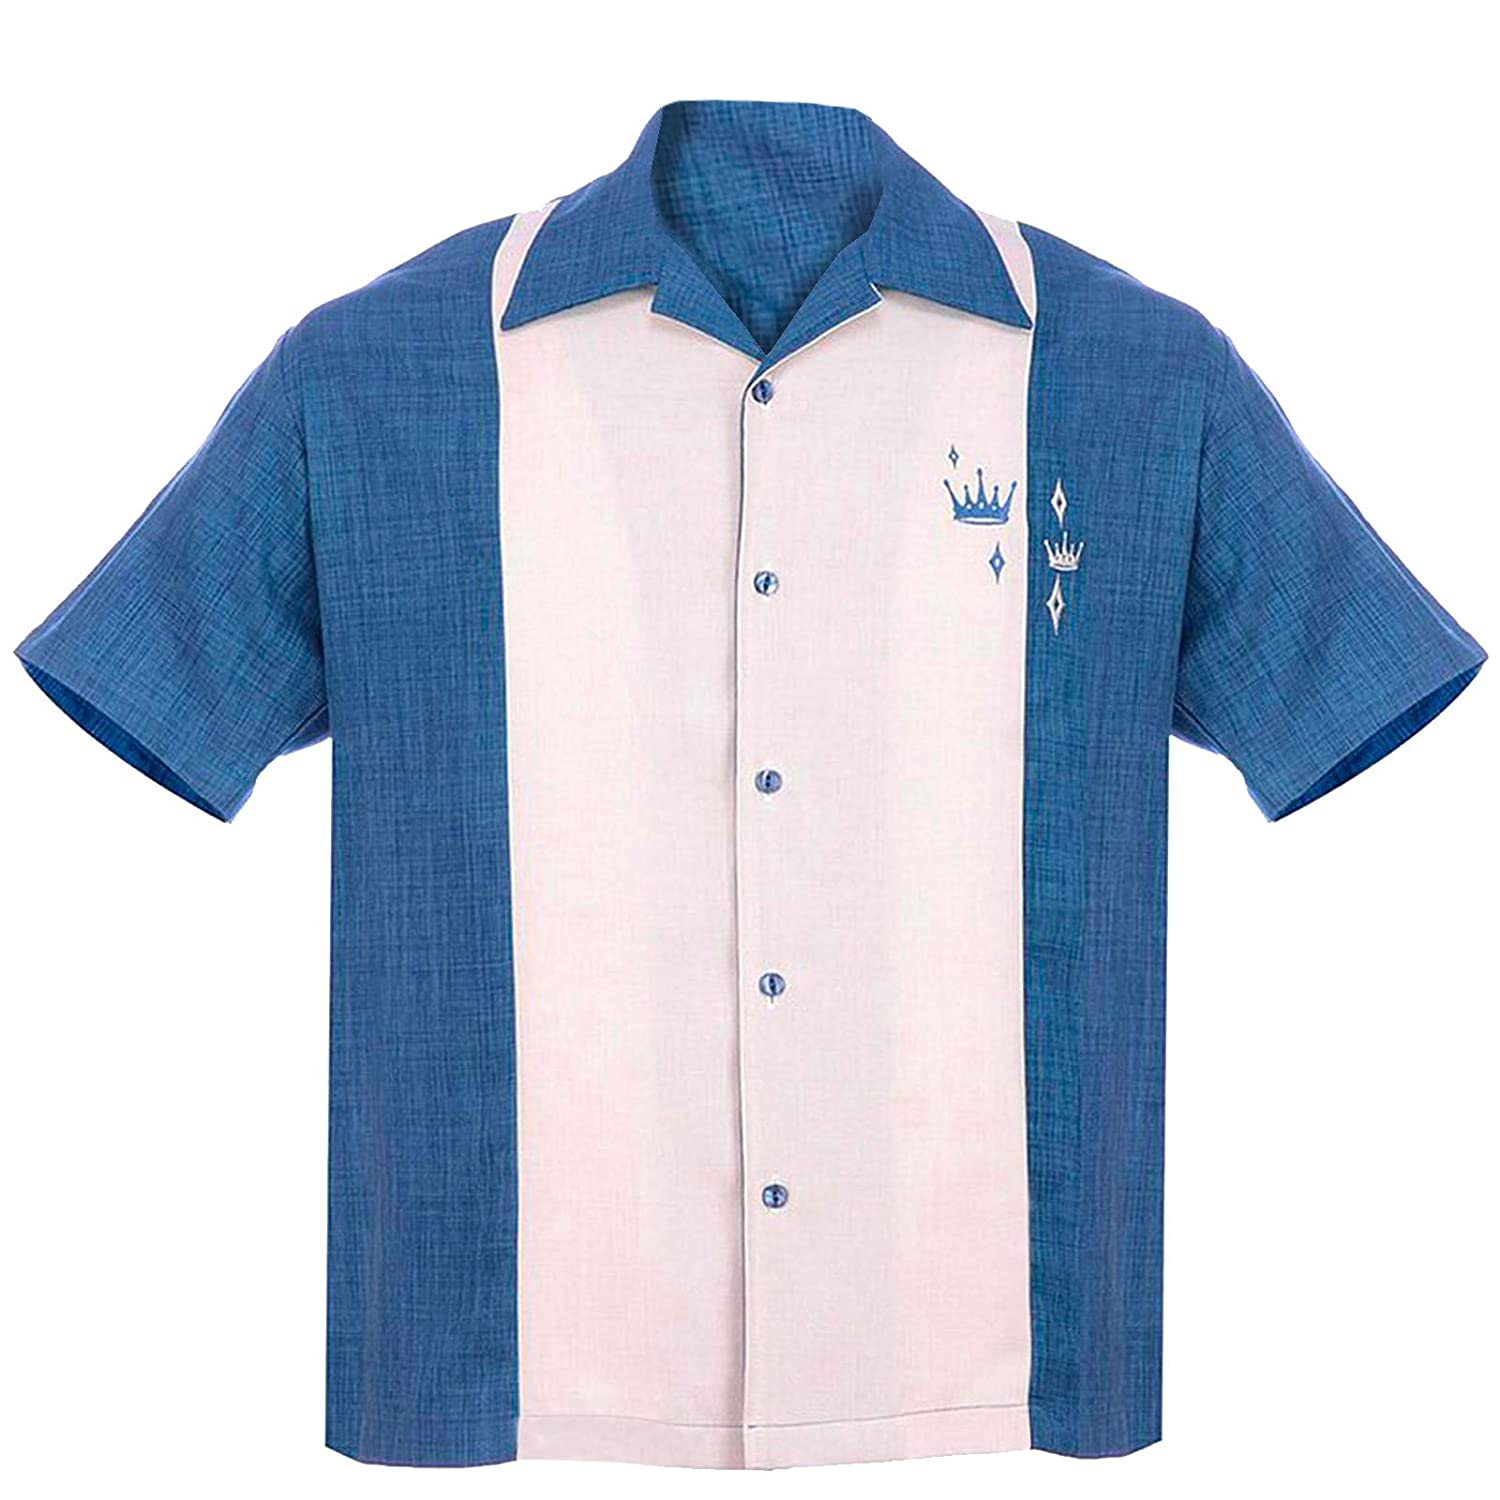 1950s Men's Costumes: Greaser, Elvis, Rockabilly, Prom Steady Clothing Mens Contrast Crown Button Up Bowling Shirt Blue $59.99 AT vintagedancer.com